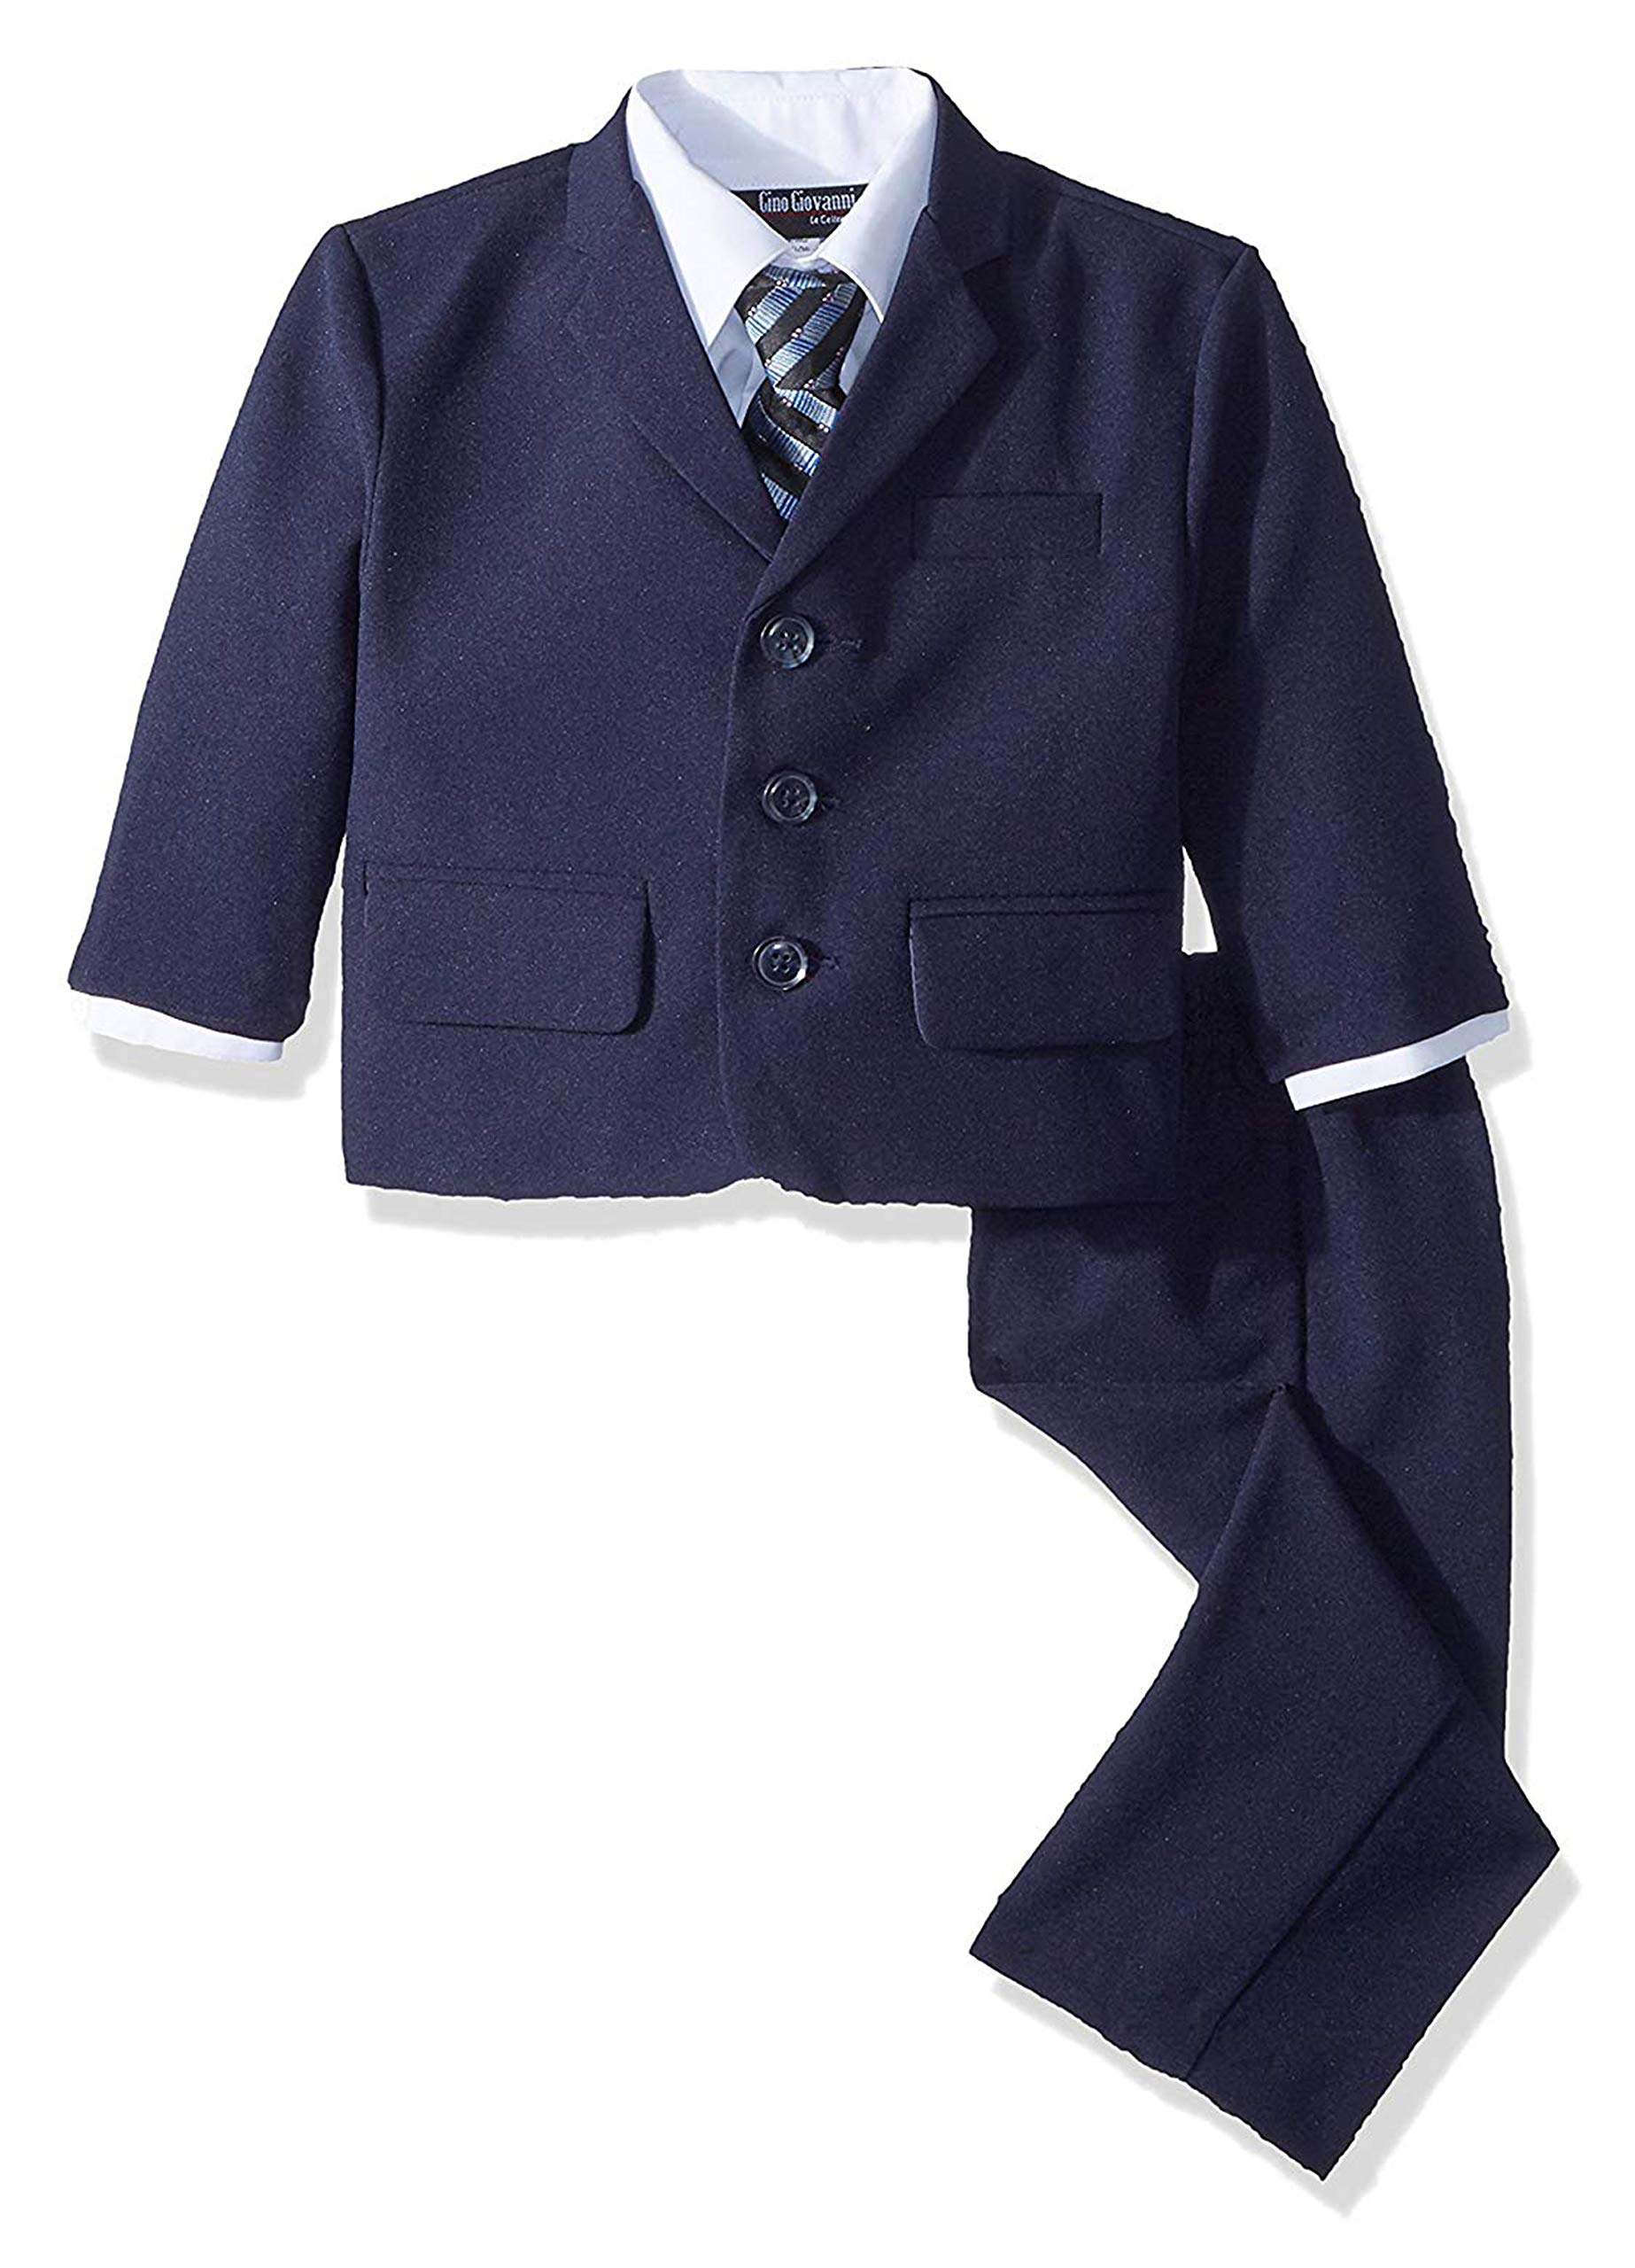 Gino Boys G230 Navy Blue Suit Set from Baby to Teens (24 Months)